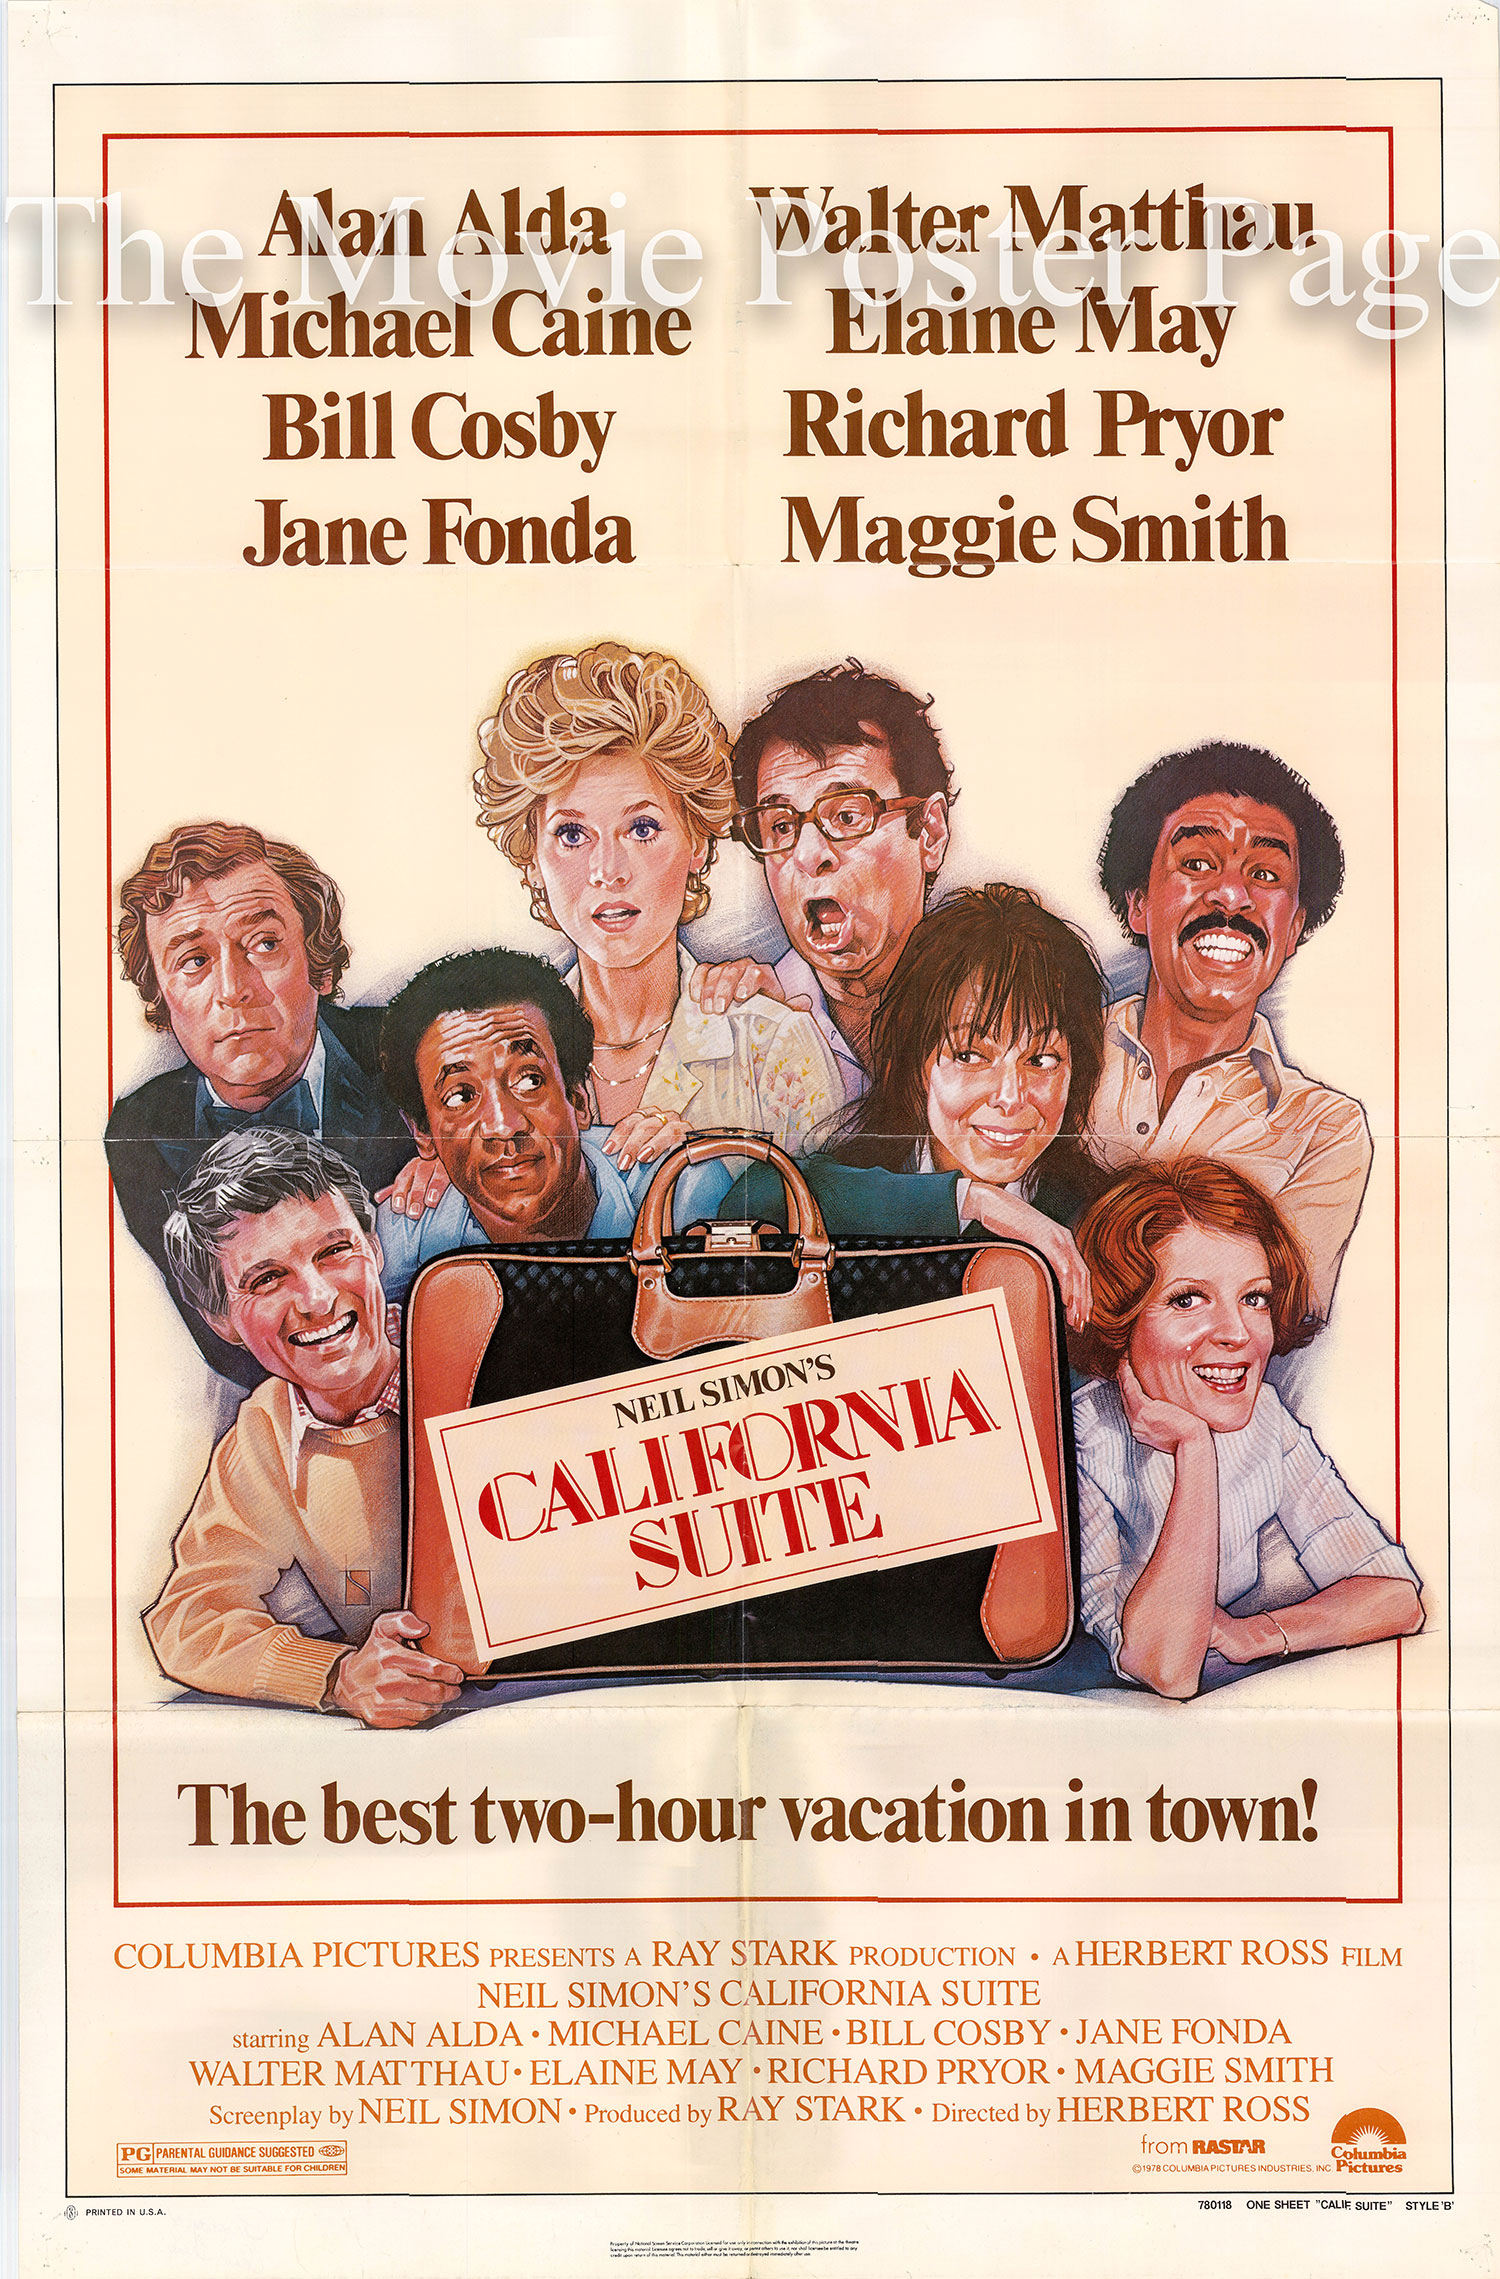 Pictured is a US one-sheet poster for the 1978 Herbot Ross film California Suite starring Alan Alda.